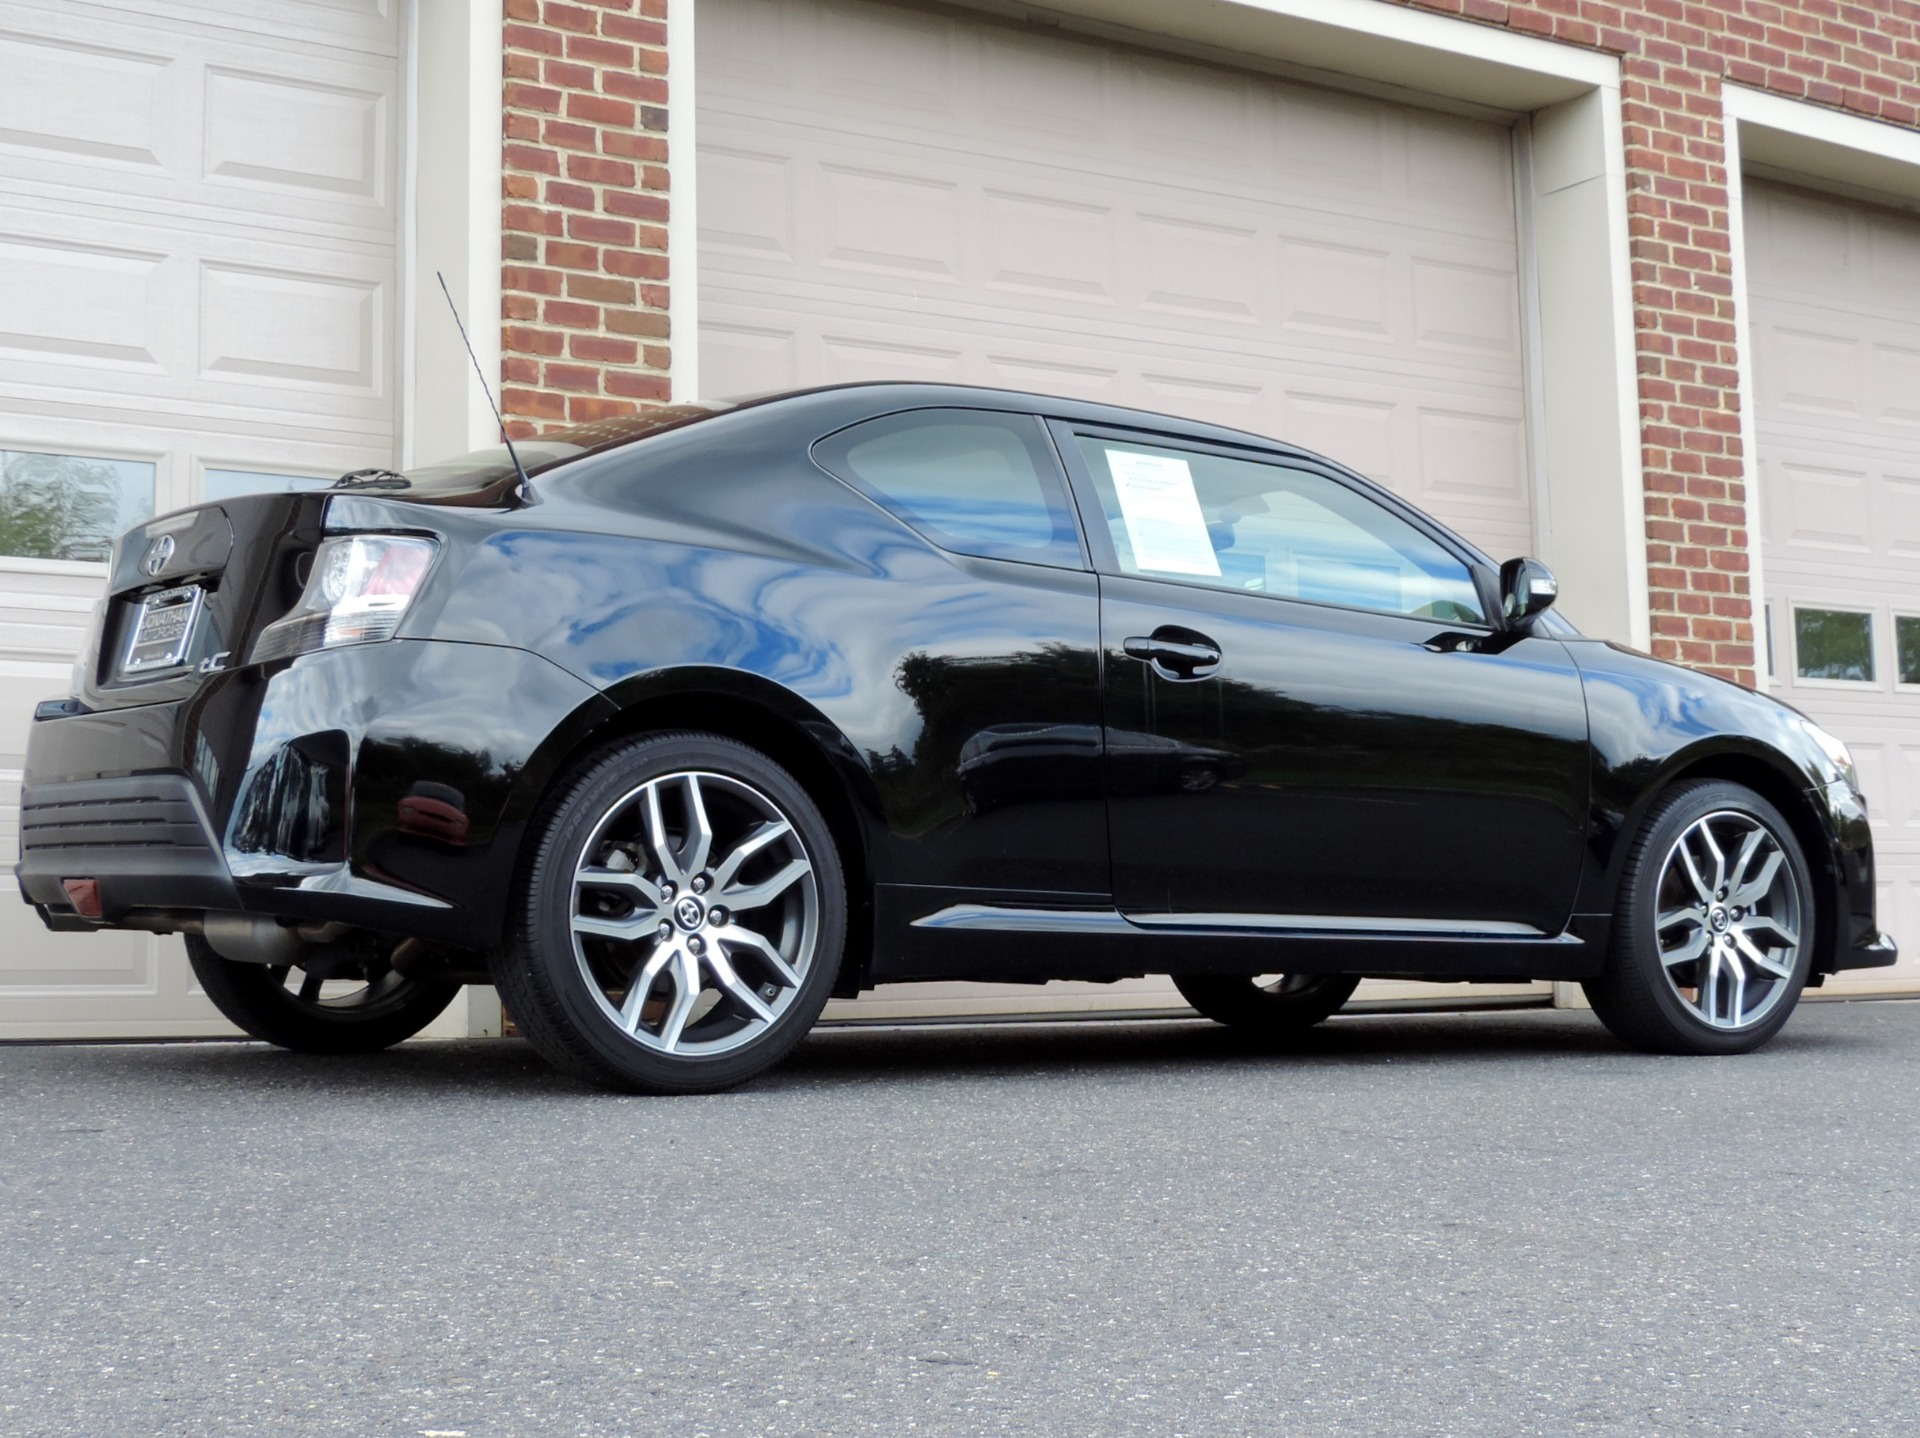 Used-2016-Scion-tC-Liftback